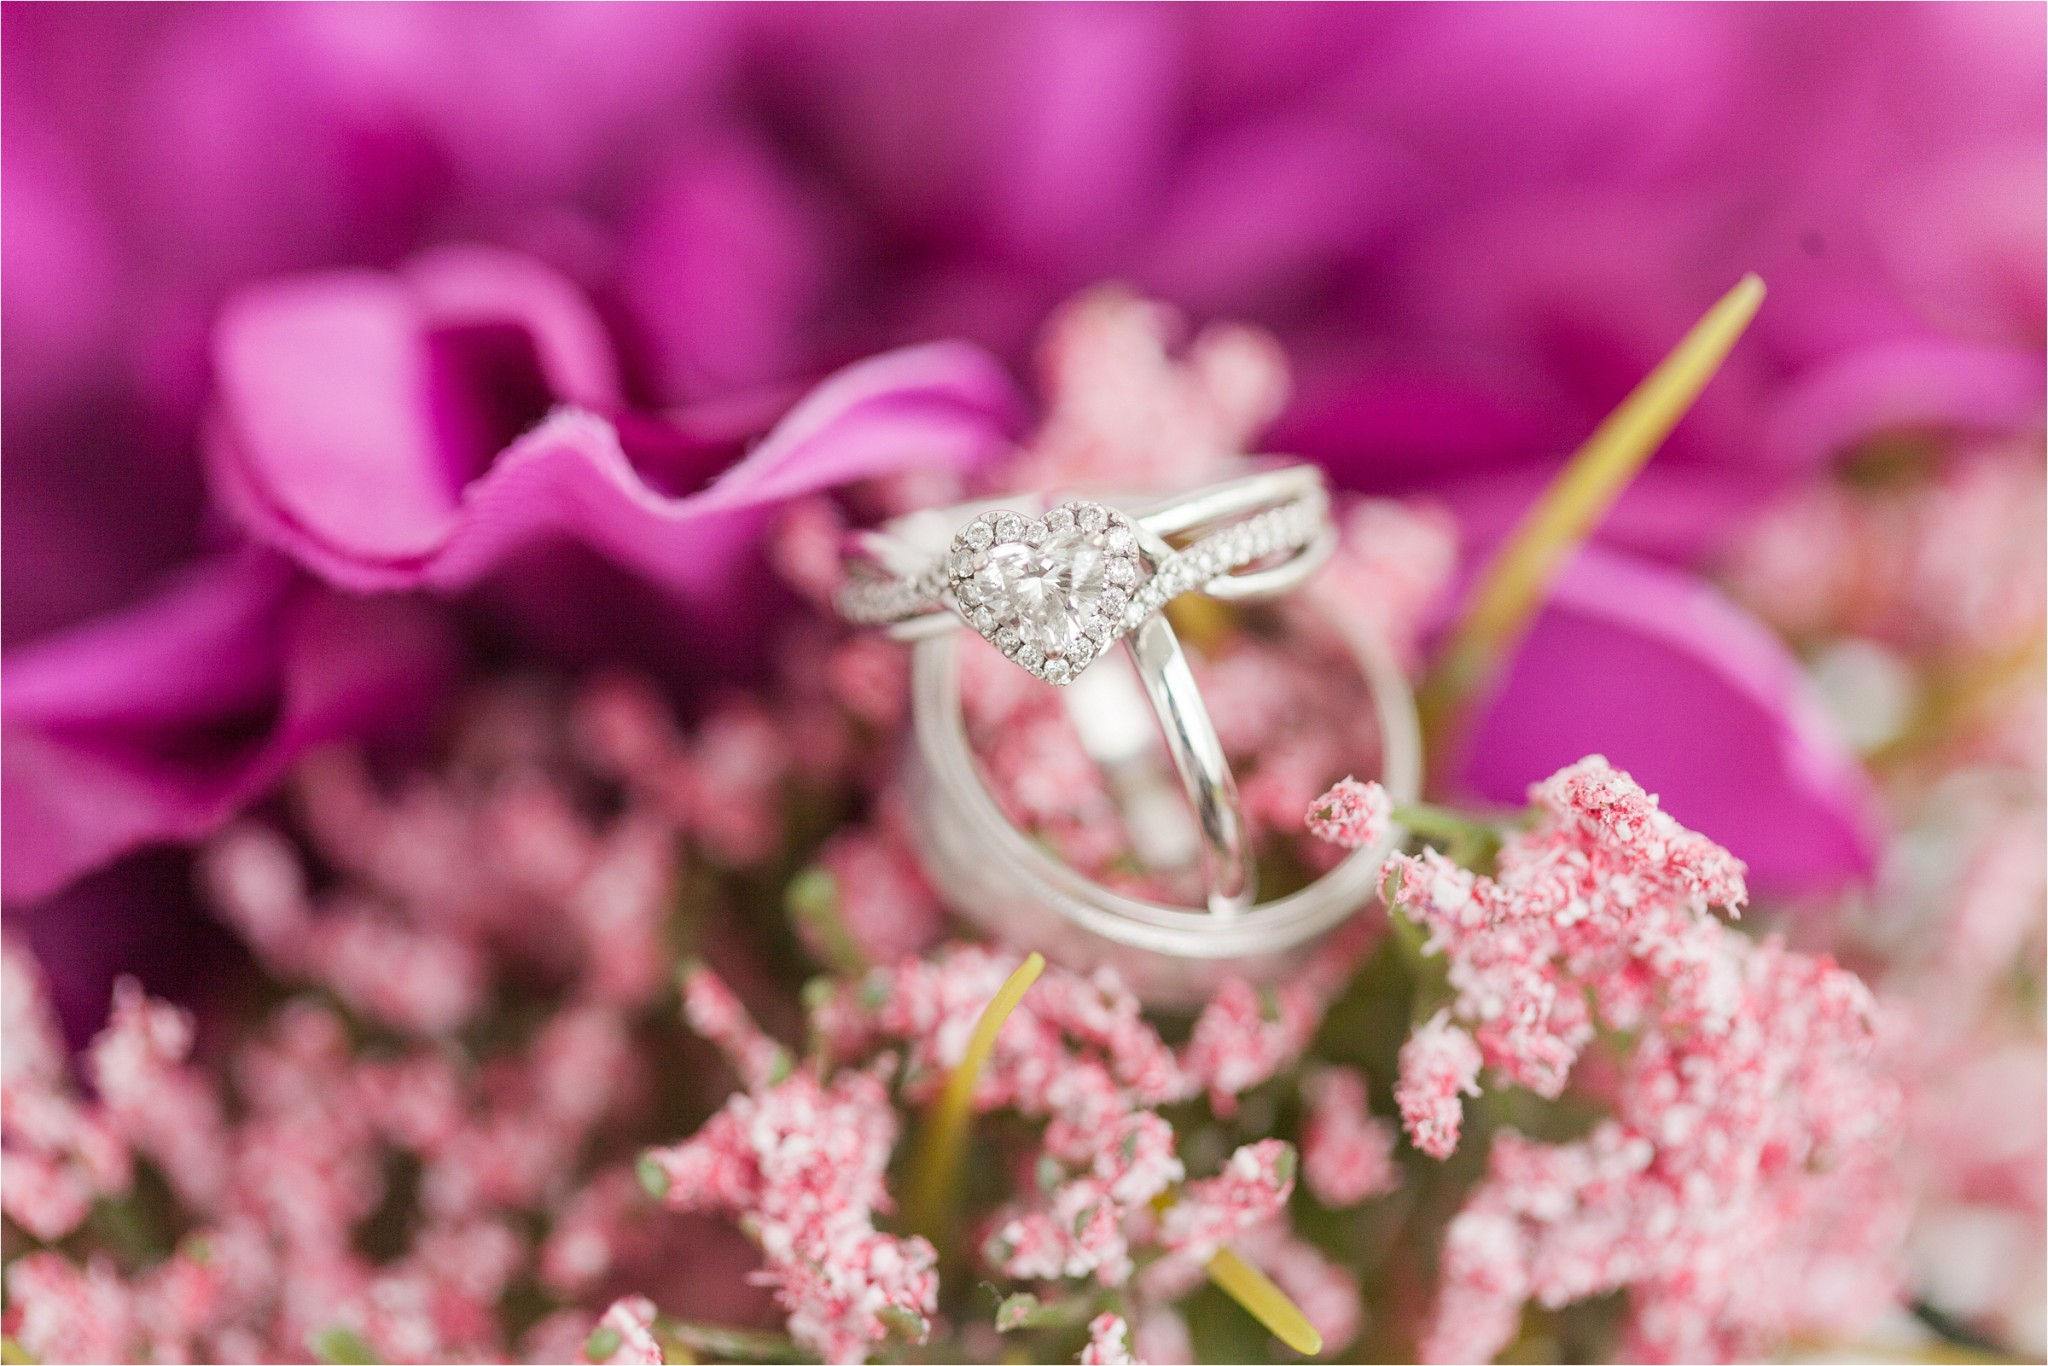 These purple flowers were the perfect backdrop for their rings!